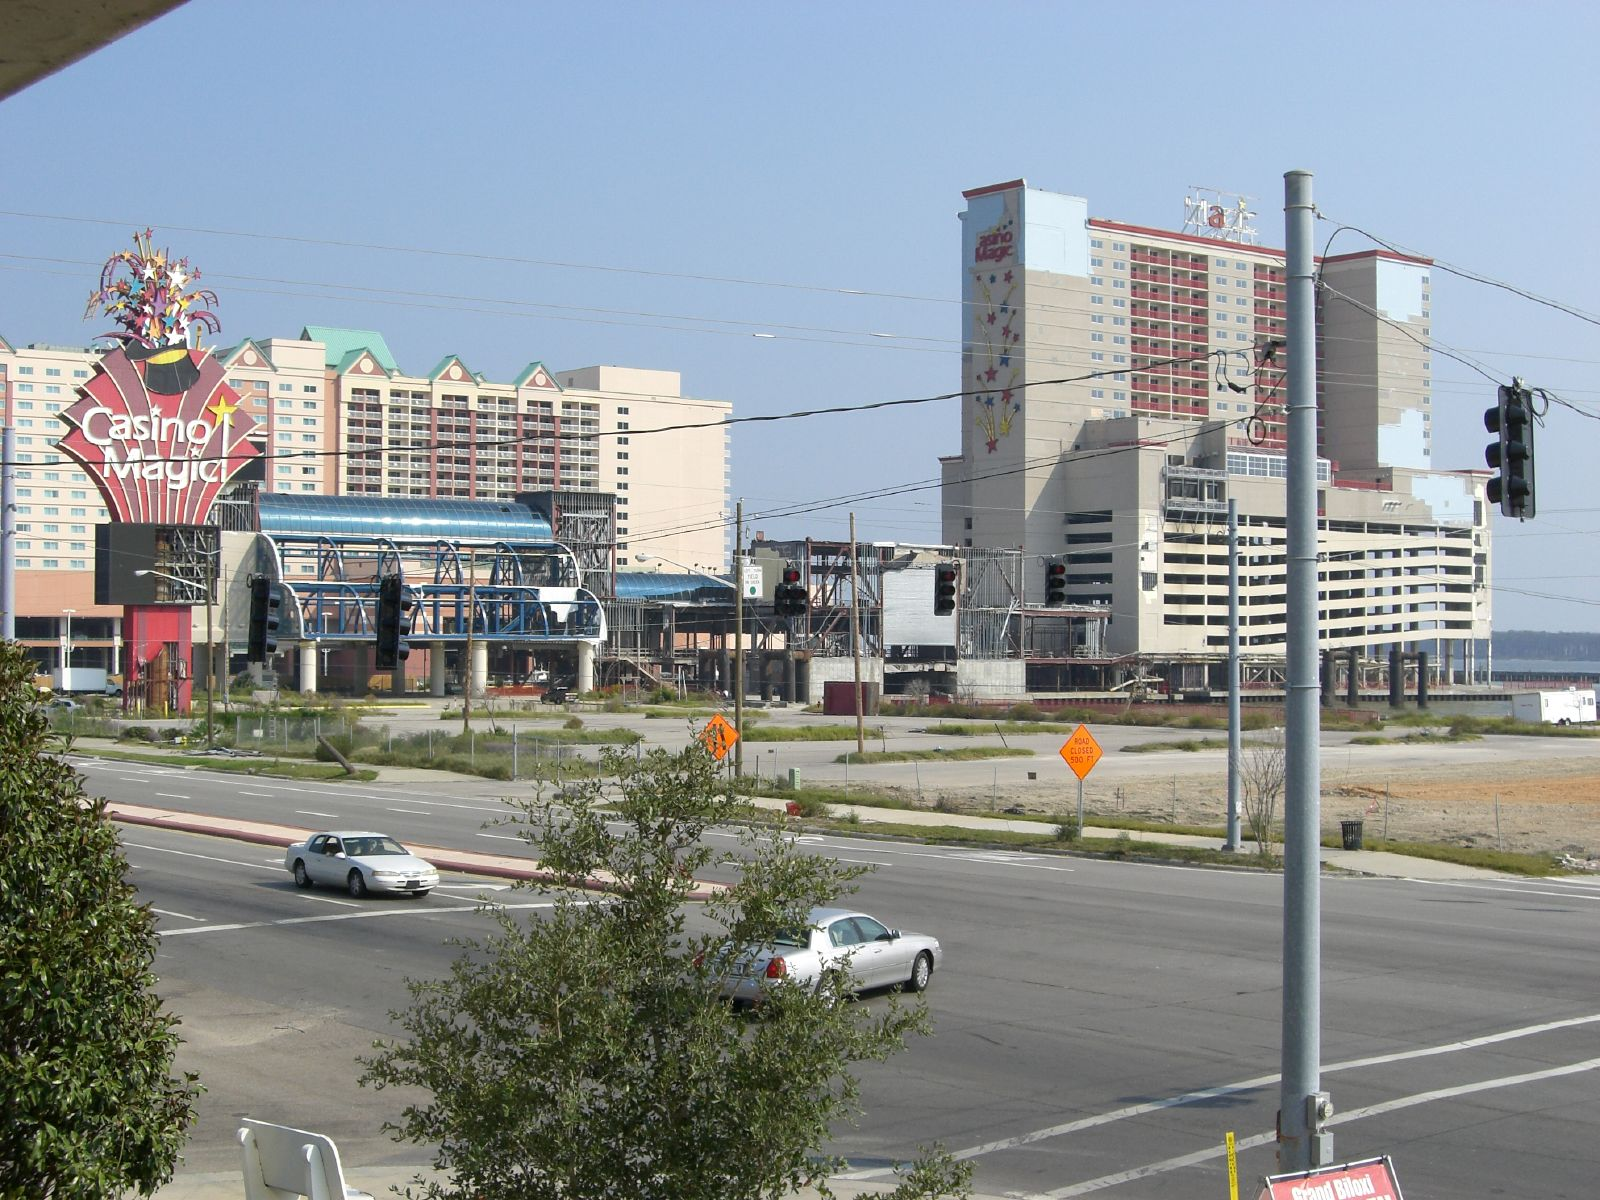 Missouri casino hotels